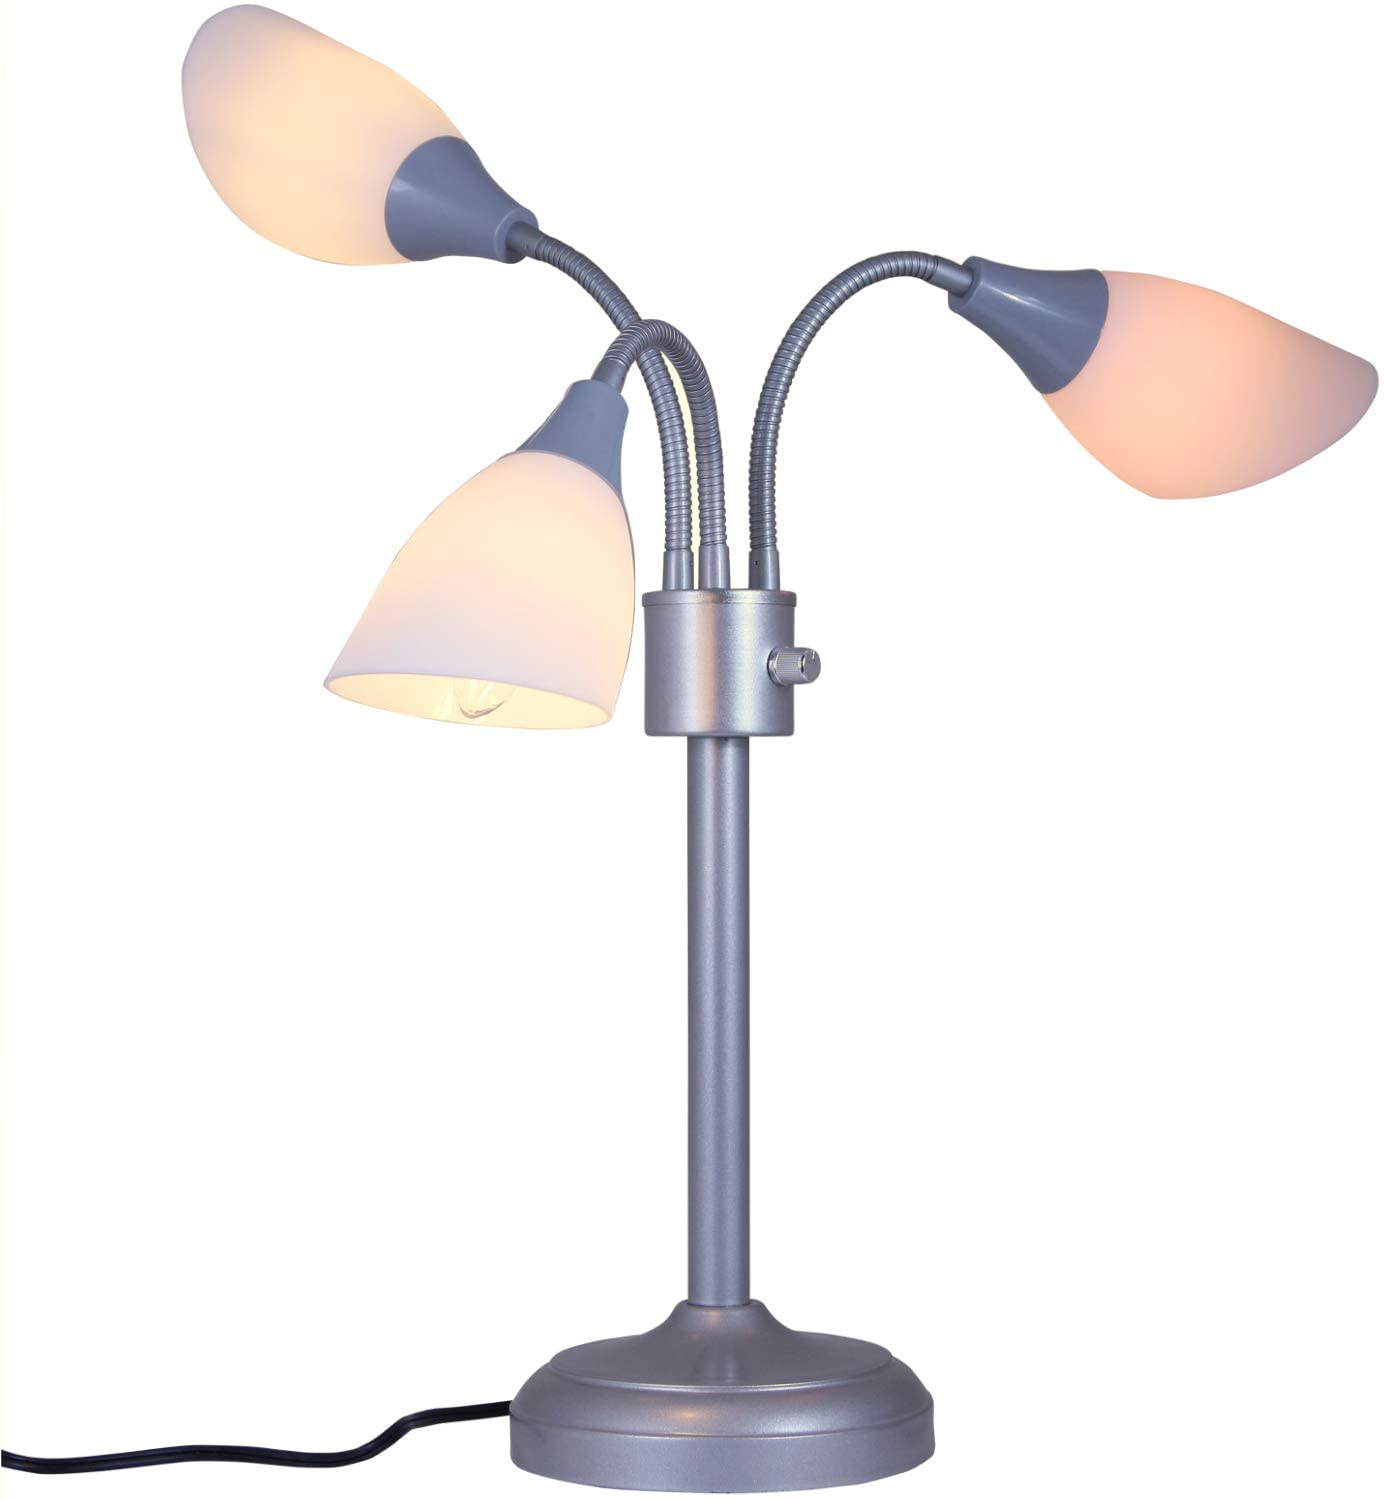 Modern Table Lamp Room Light by Lightaccents - Medusa Multi Head Standing Lamp Bedroom Light with 3 Positionable White Acrylic Reading Shades Room Light (Grey)